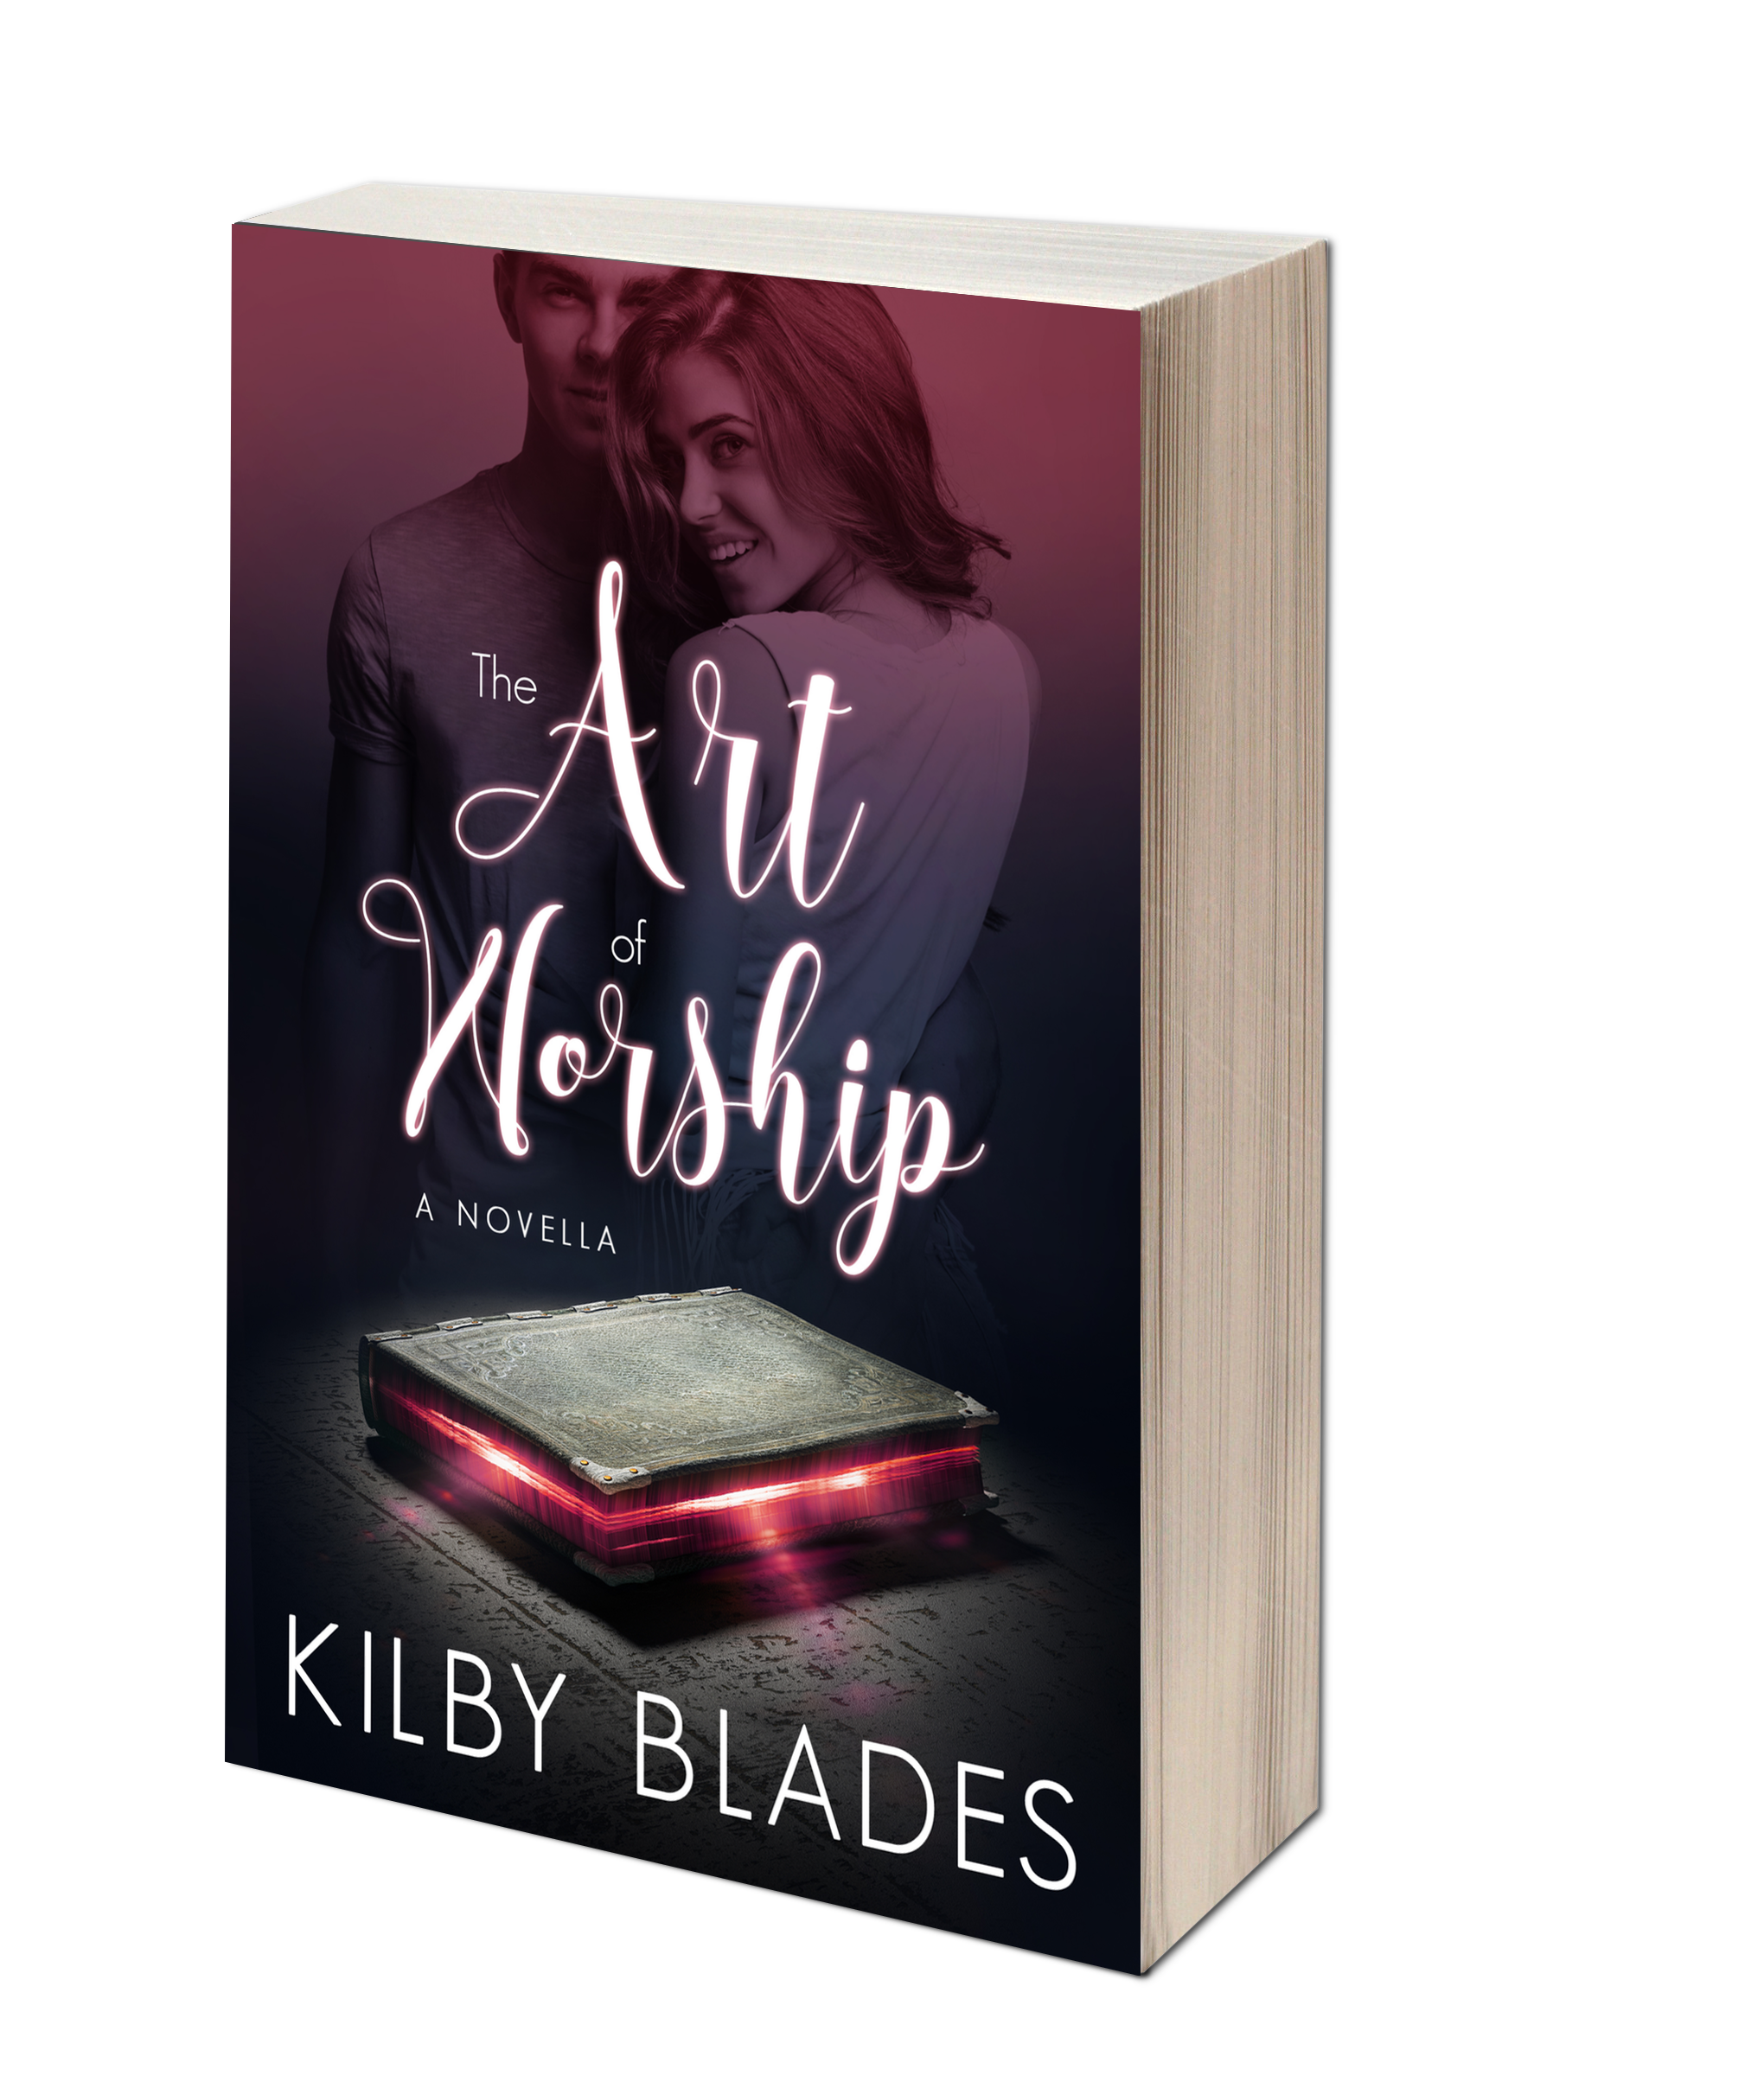 The Art of Worship by Kilby Blades